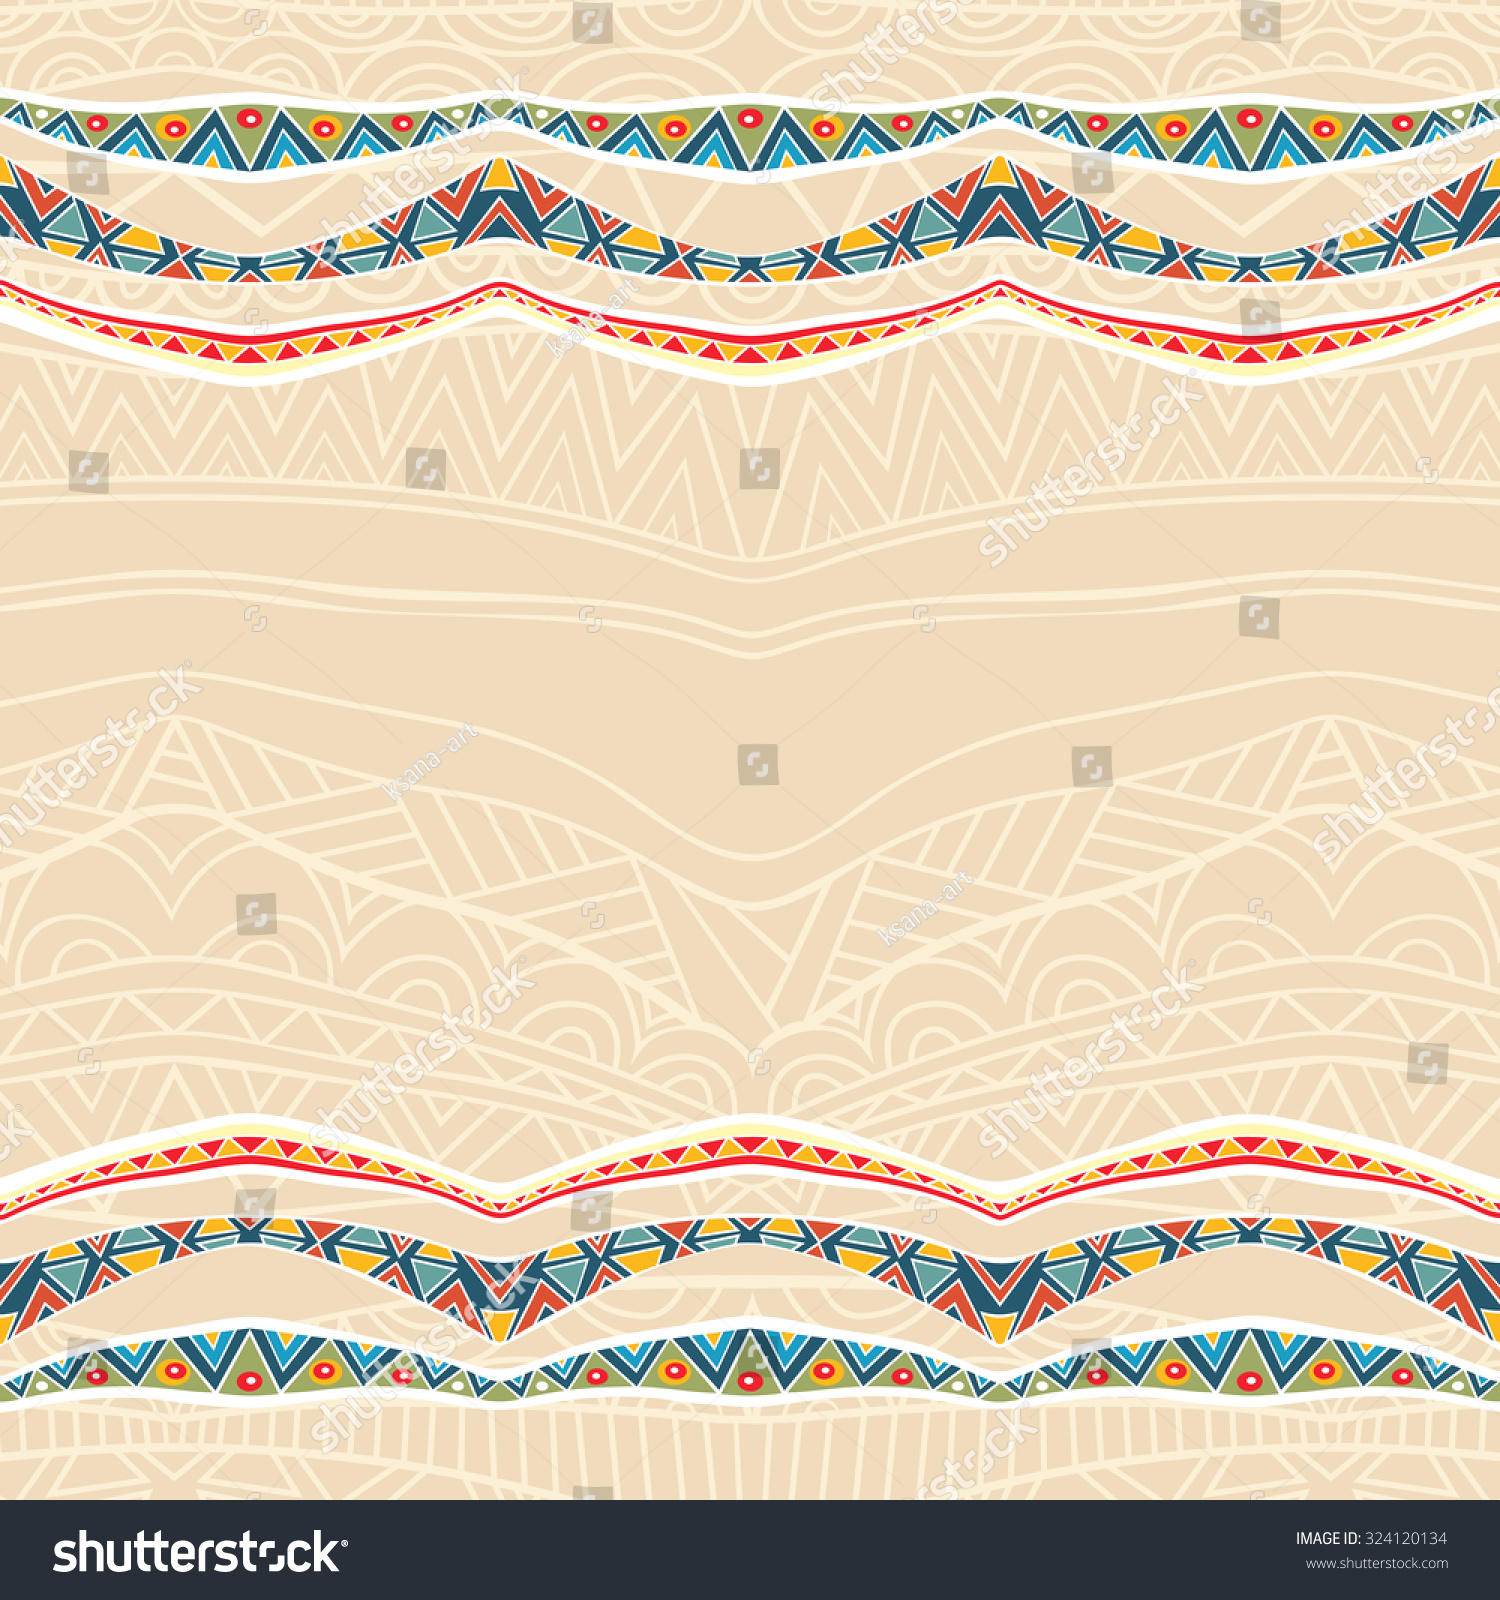 Festive background with ornate ribbons. Bright border with mexican ...